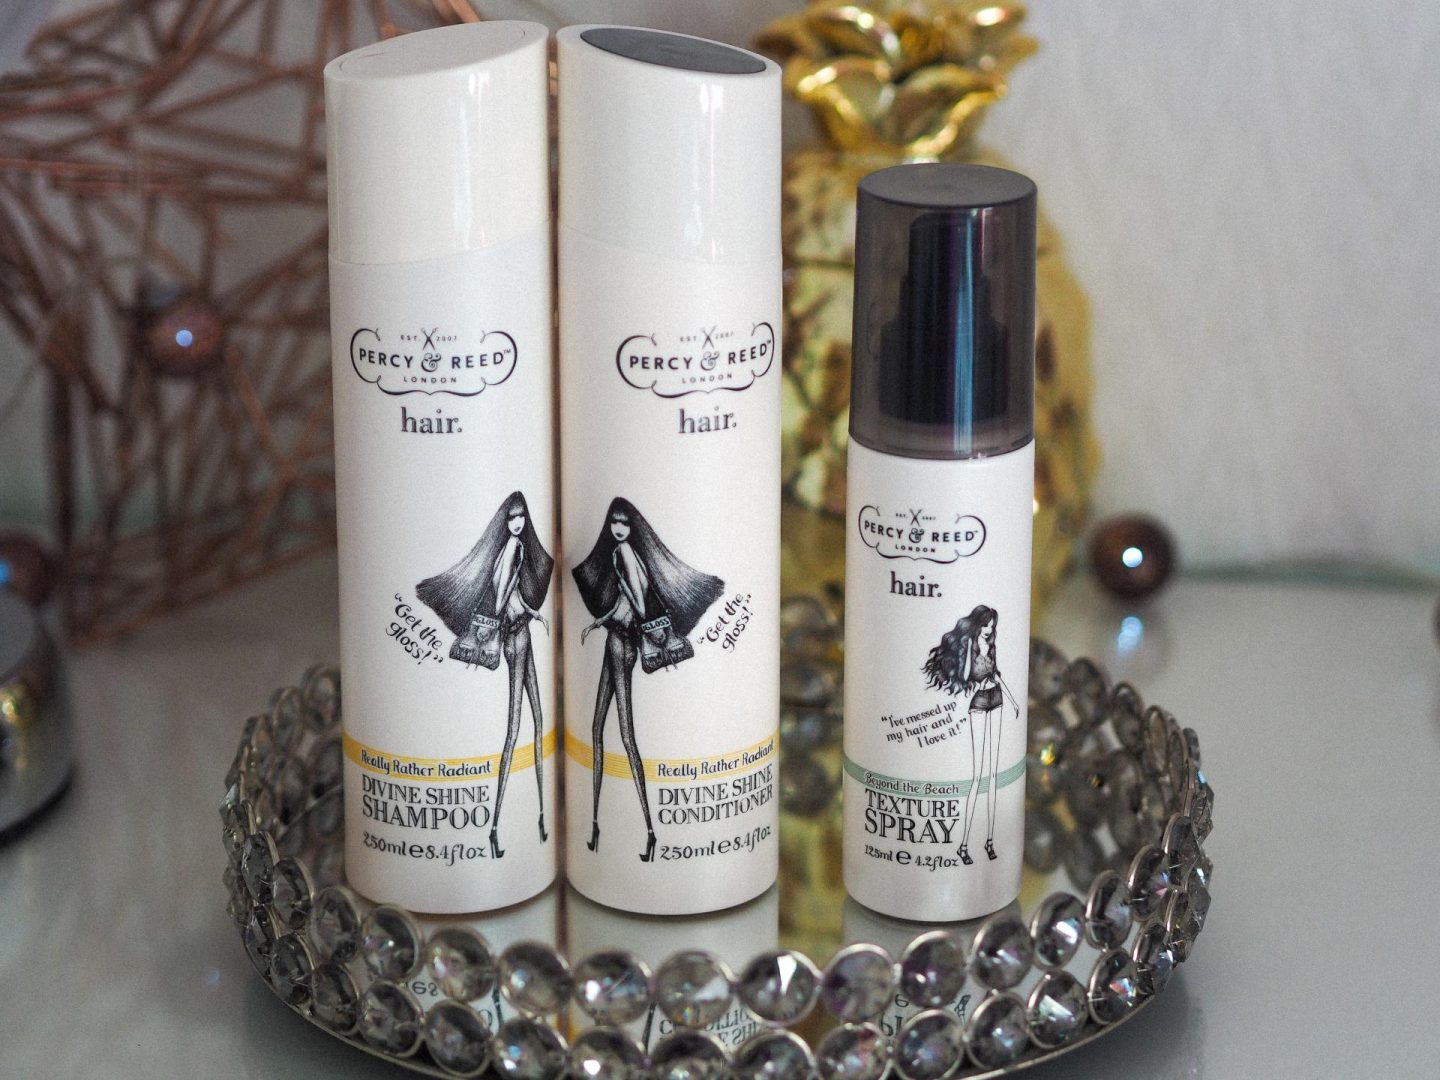 My Haircare Routine Whilst Travelling with Percy & Reed Shampoo and Conditioner - Rachel Nicole UK Blogger